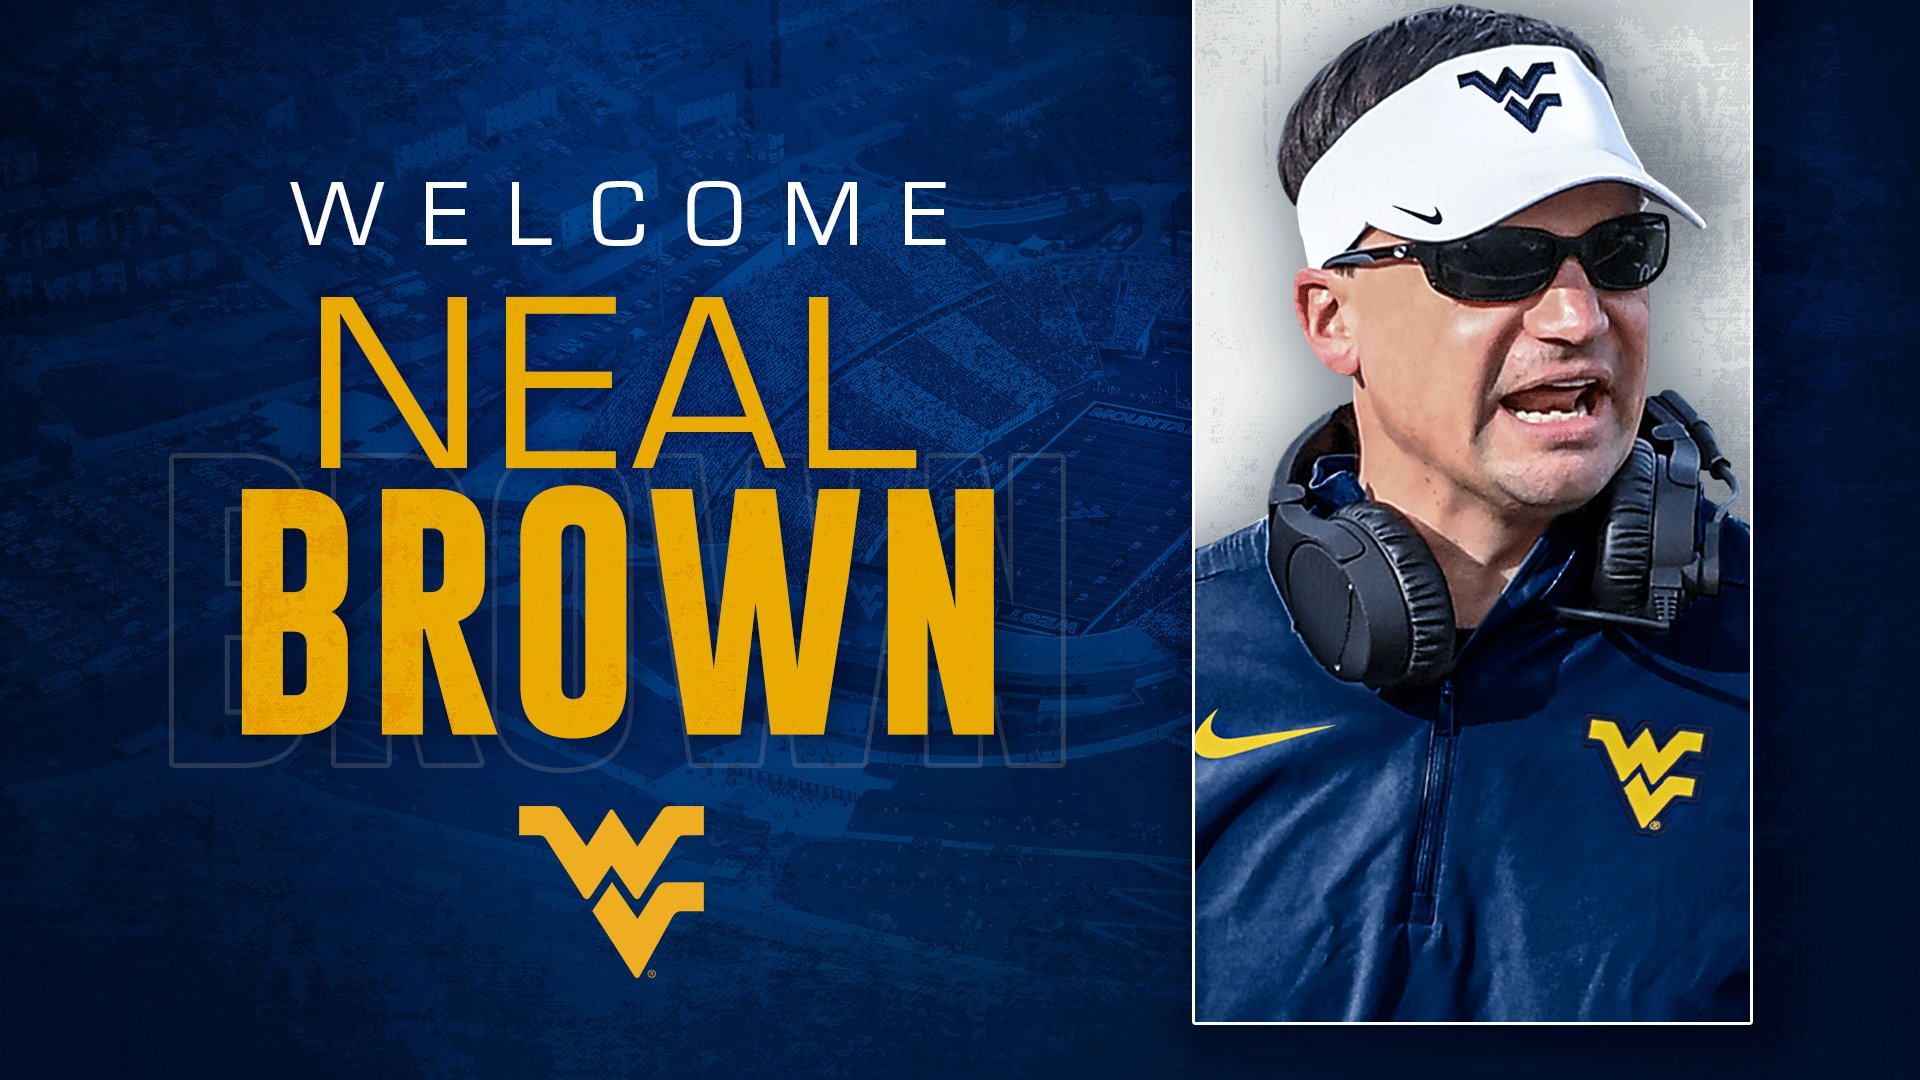 Neal_Brown_Welcome_1546704454552.jpg